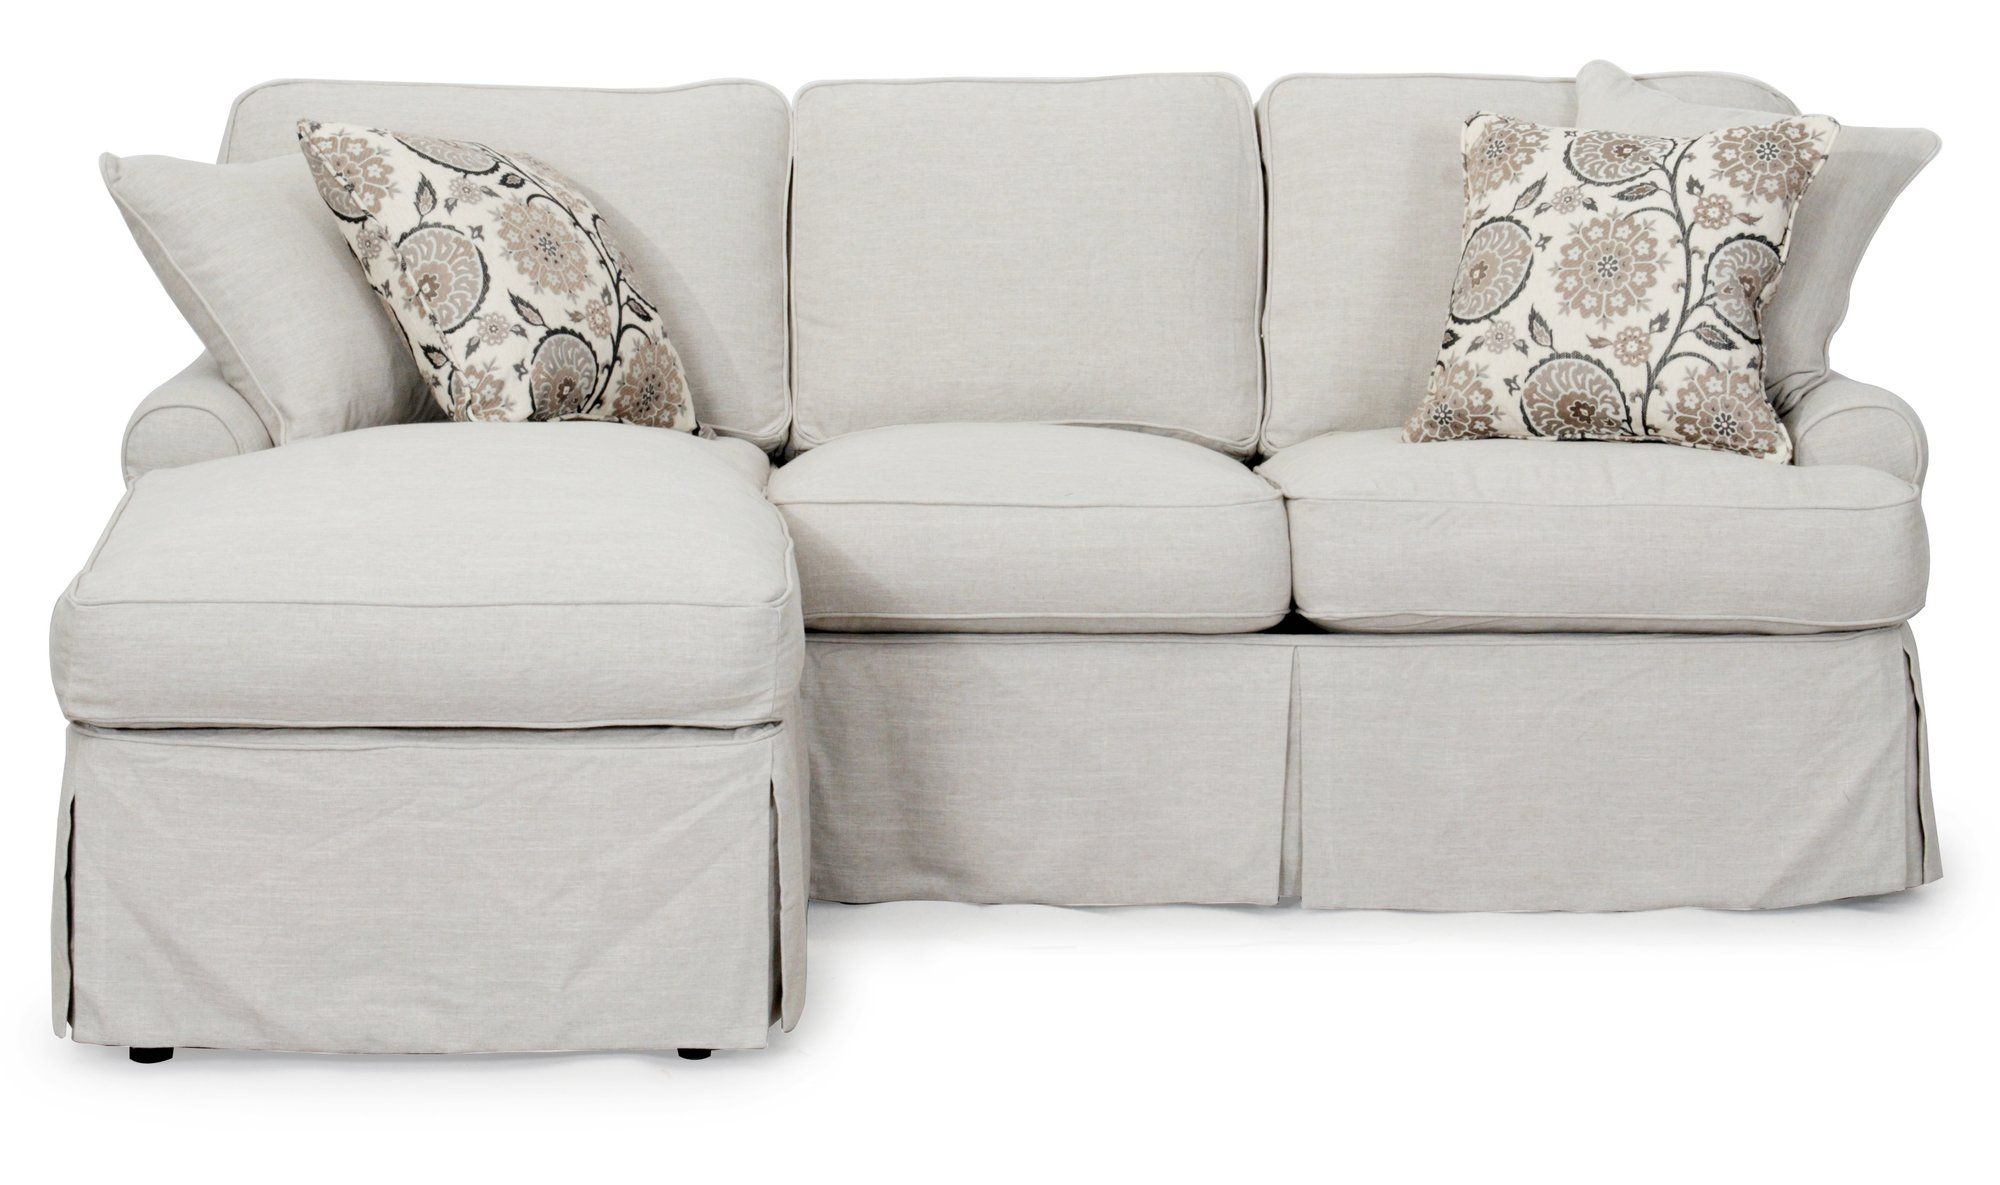 Callie T Cushion Slipcover In 2020 Cushions On Sofa Sectional Sofa Couch Slipcovers